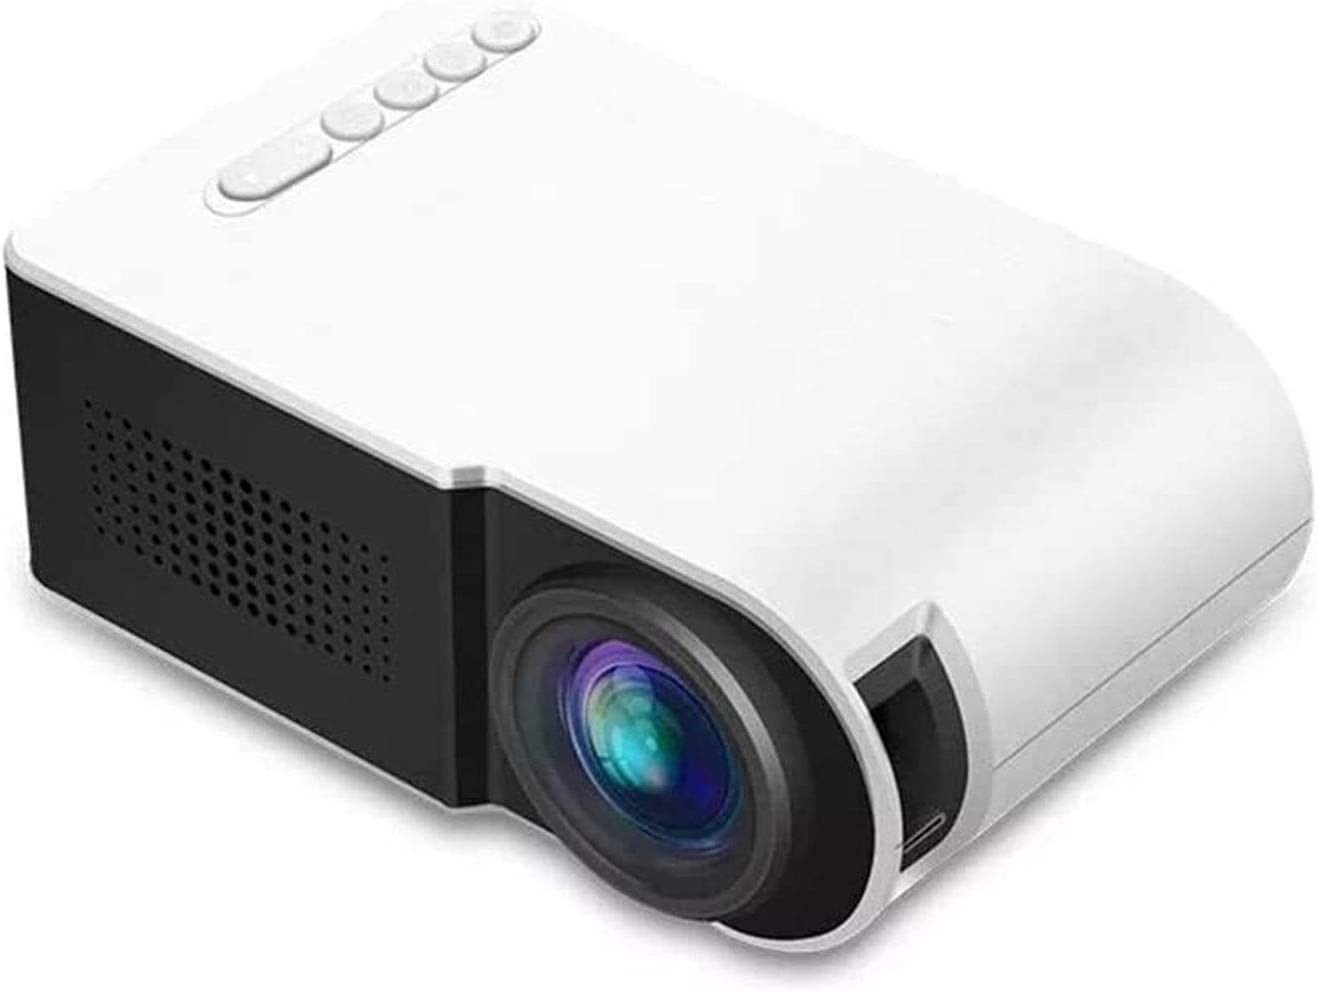 BLLXMX Office Products Portable List price Max 54% OFF Video Projector Resolu 1920x1080